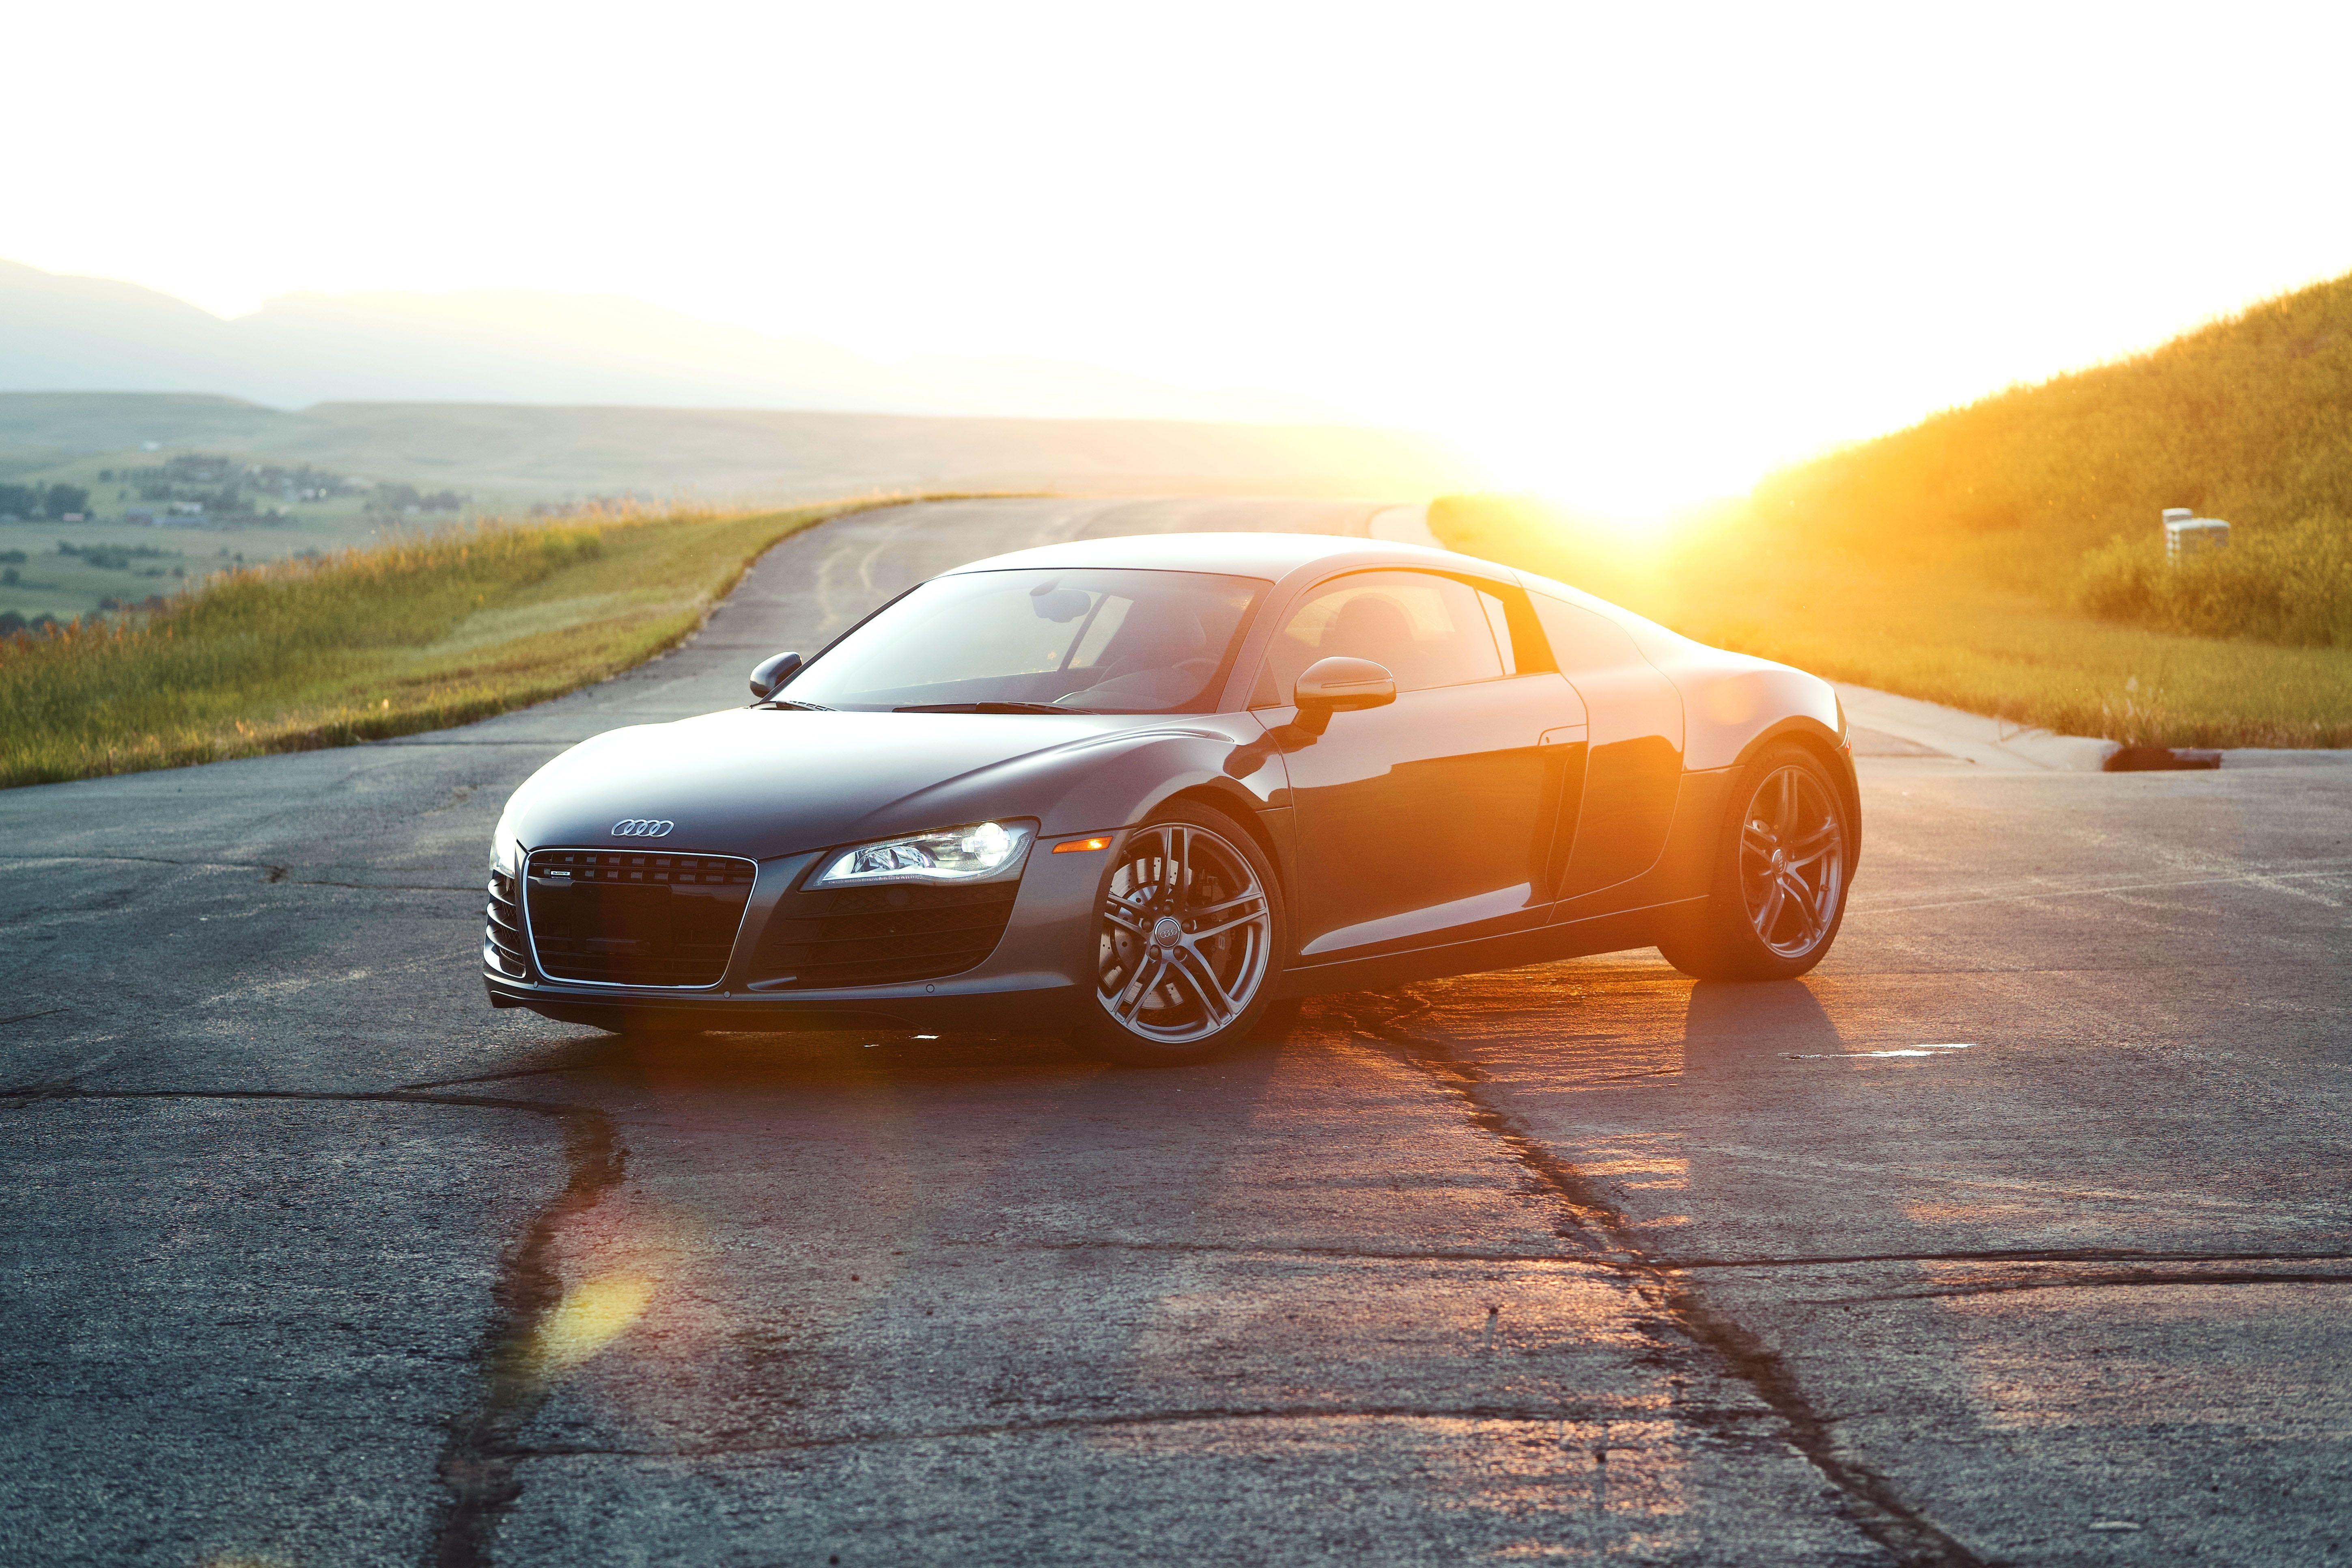 Audi R8 Seeing A Supercar Driving Down The Road In Wyoming Is A Rare Sight But When Gorgeous Car Rolls Through Wide Jaguar Car Sports Car Wallpaper Sports Car